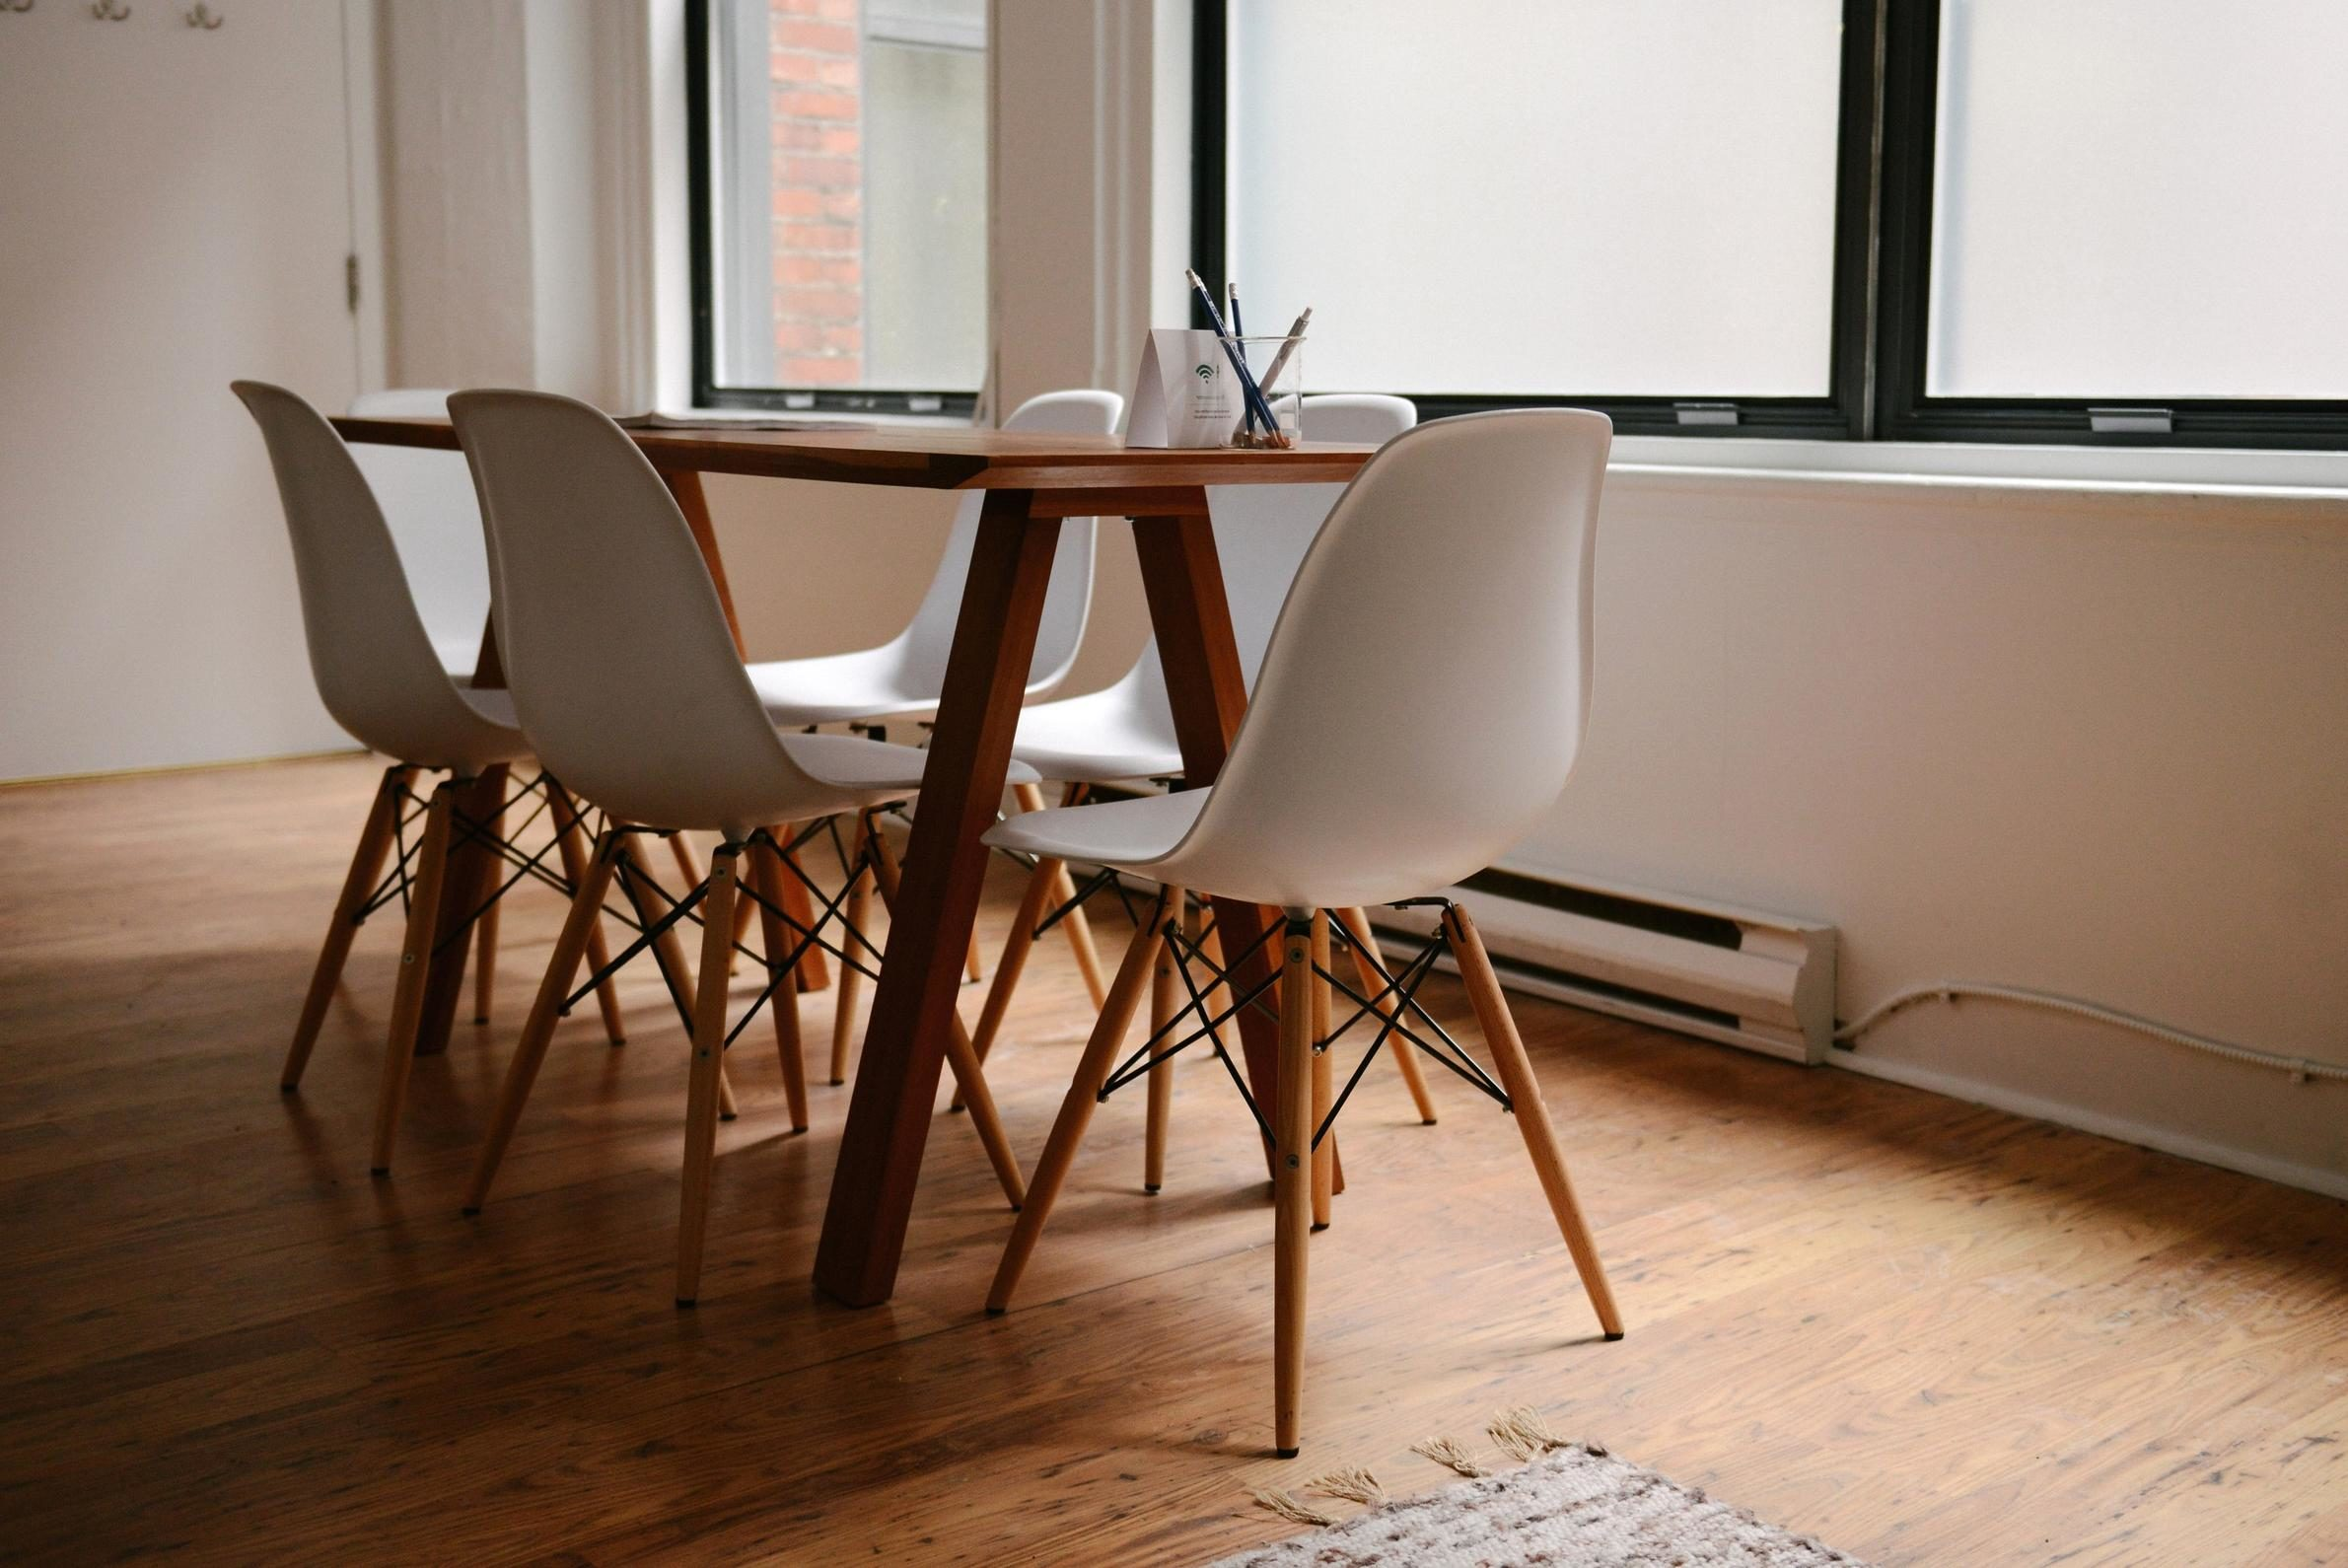 Furniture, Chair, Interior, Table, Room, Contemporary, Window